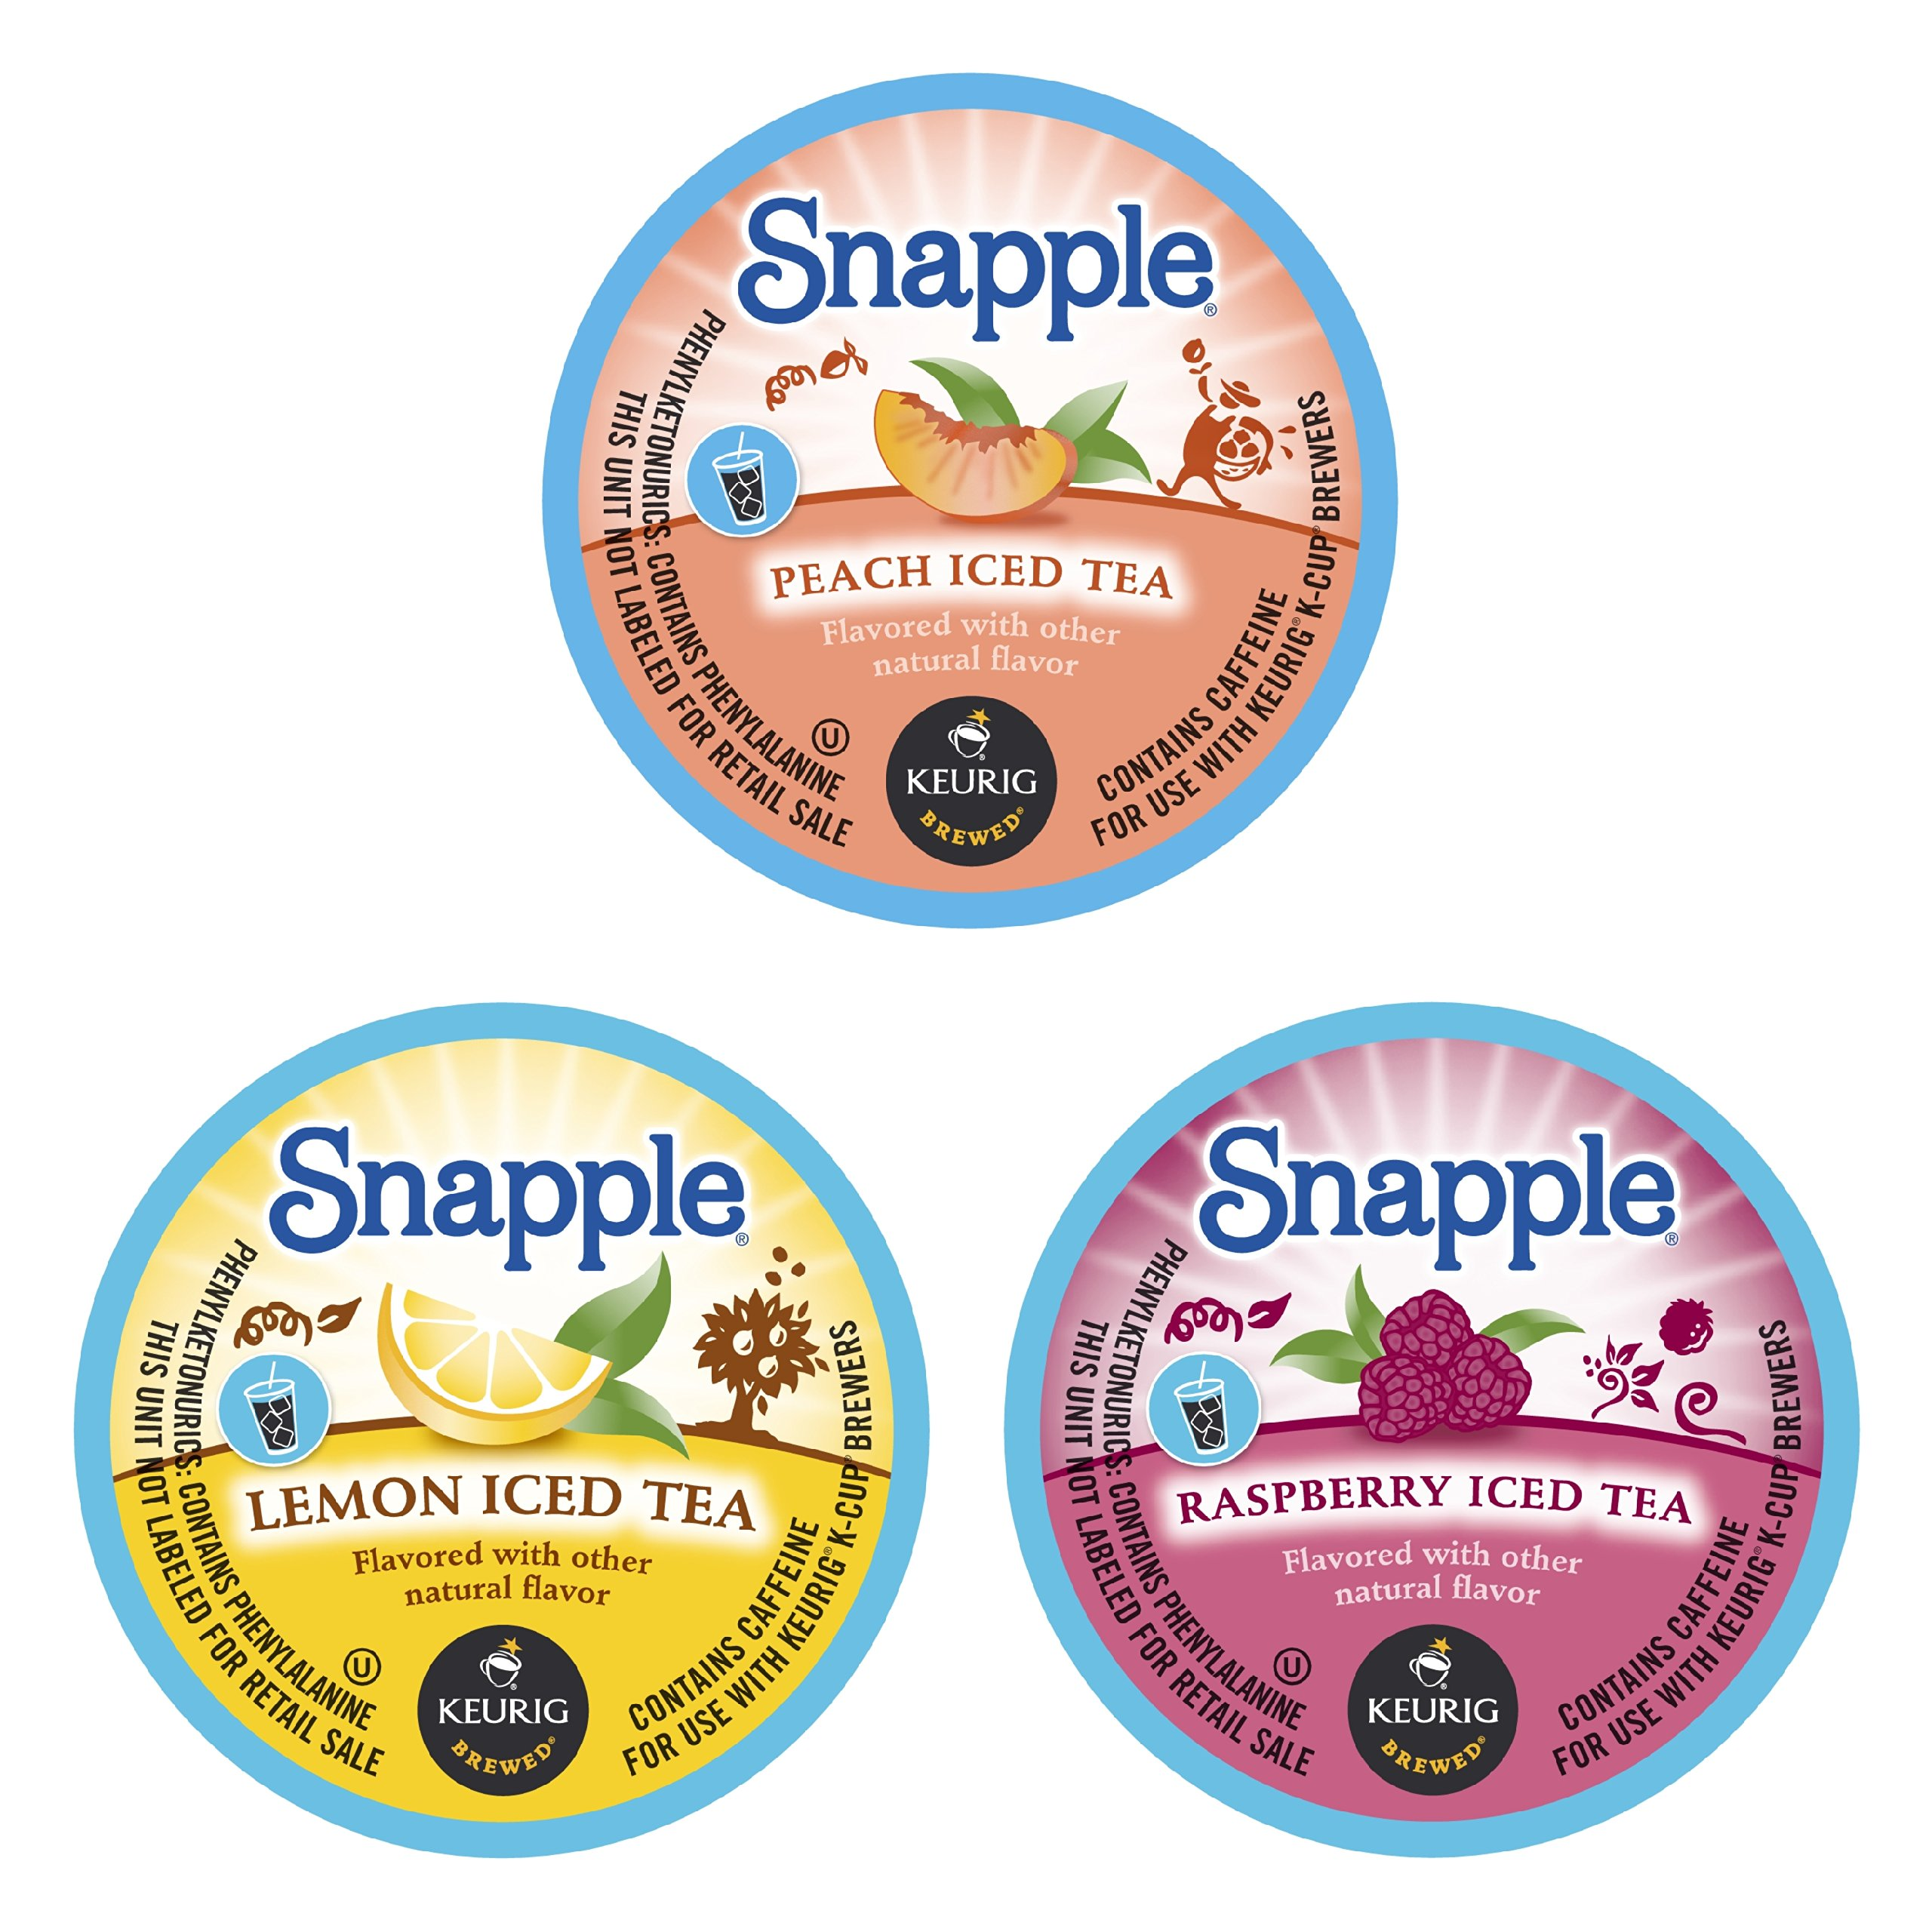 Snapple Variety Lemon, Peach, and Raspberry Iced Tea Keurig K-Cups, 44 Count by Snapple